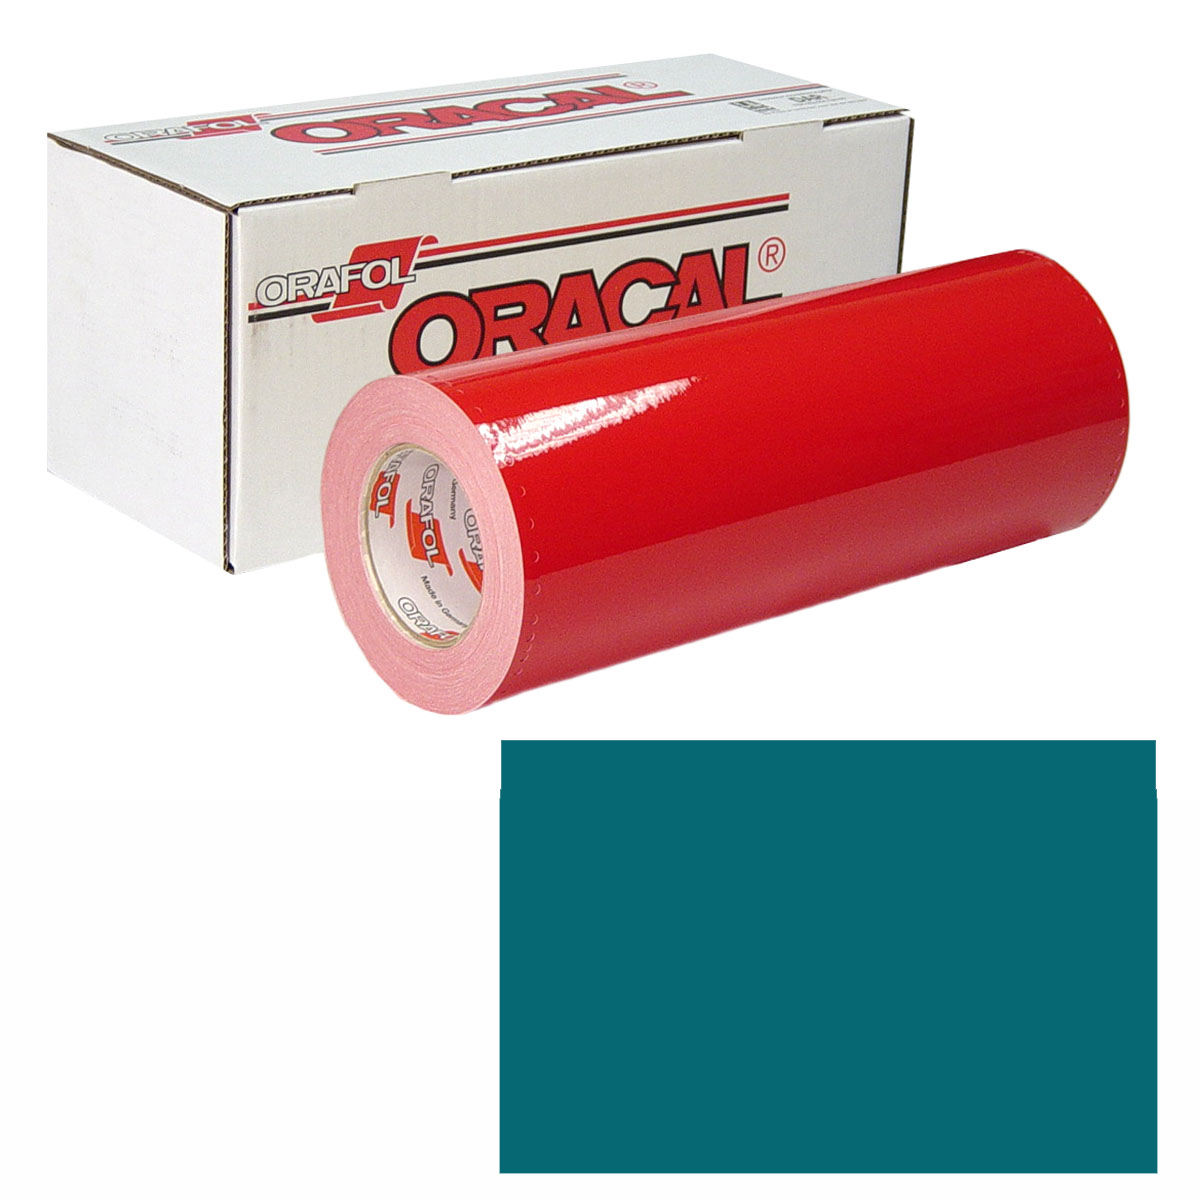 ORACAL 951M Unp 24in X 50yd 637 Teal Metallic